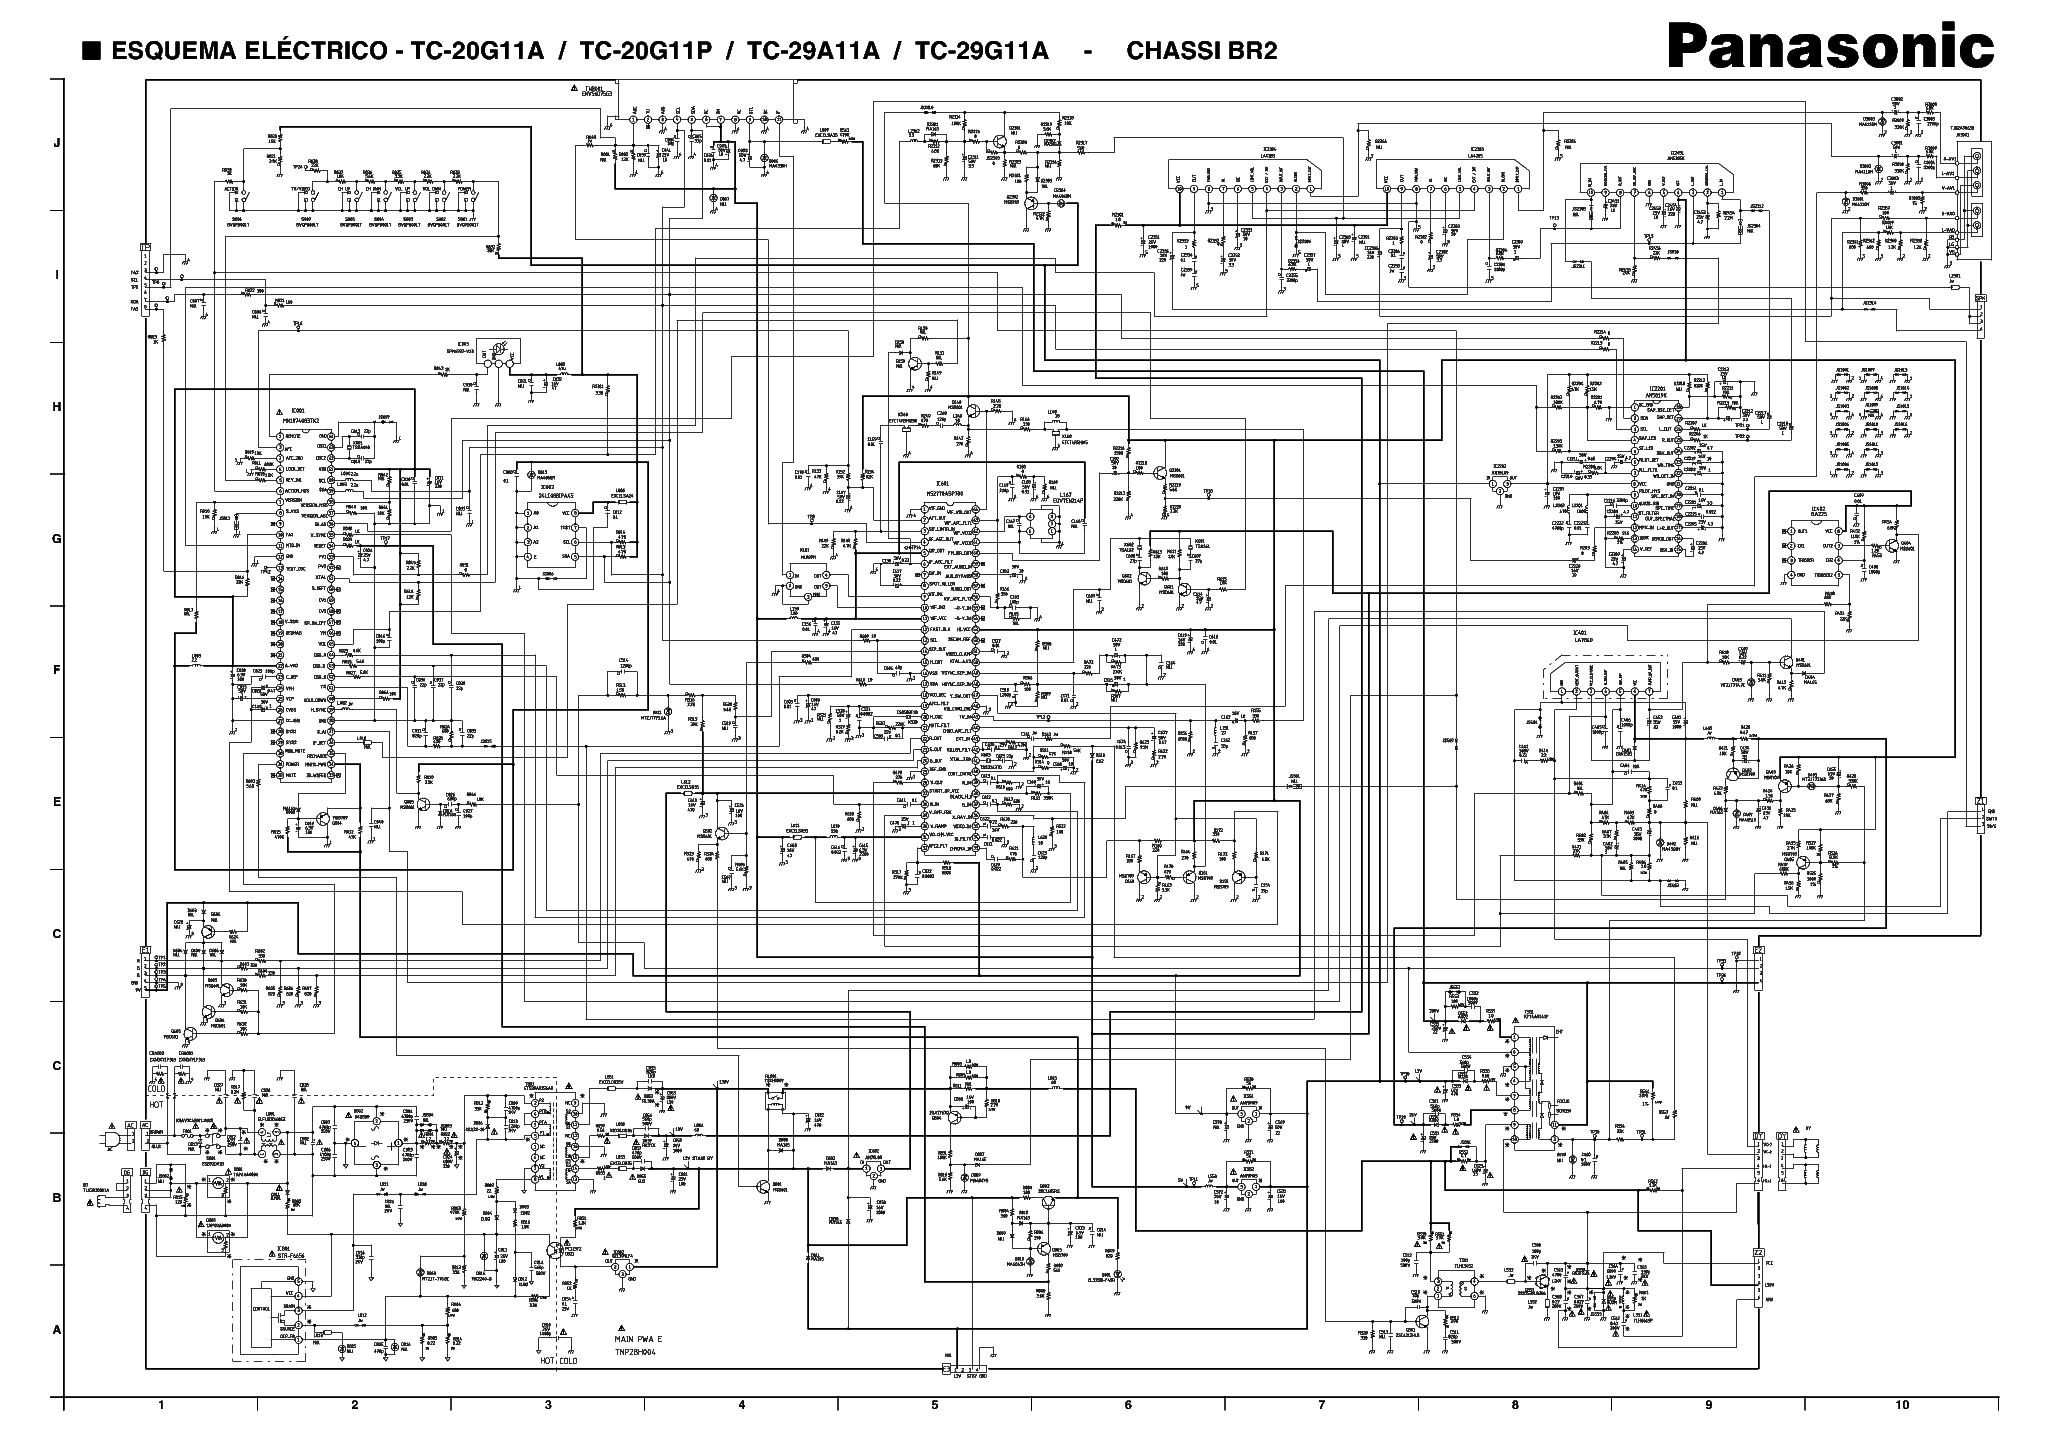 Free electrical drawing at getdrawings free for personal use rh getdrawings 555 timer schematic